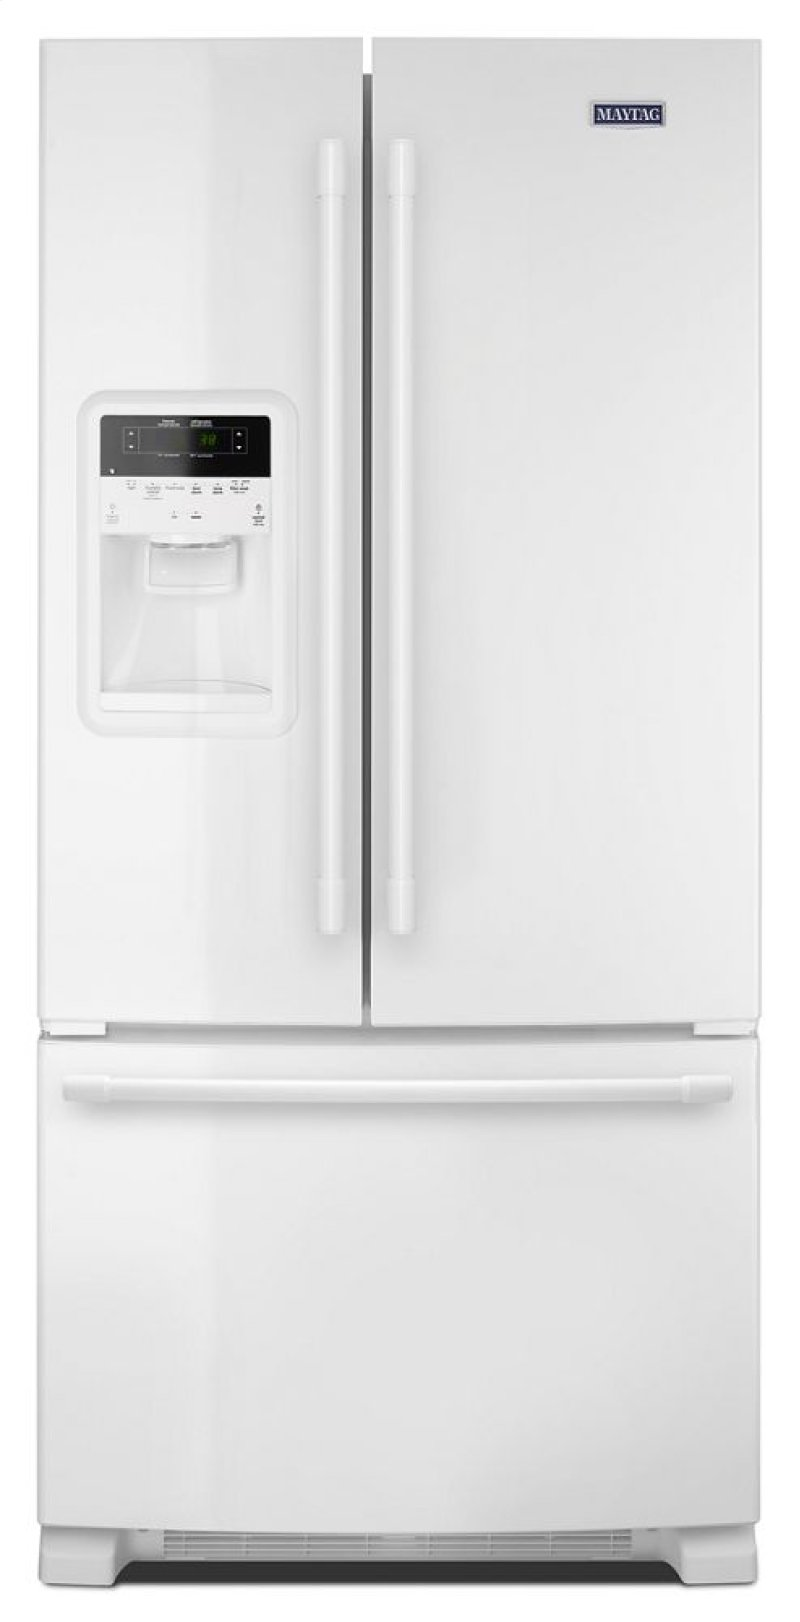 Mfi2269frw In White By Maytag In Wabash In 33 Inch Wide French